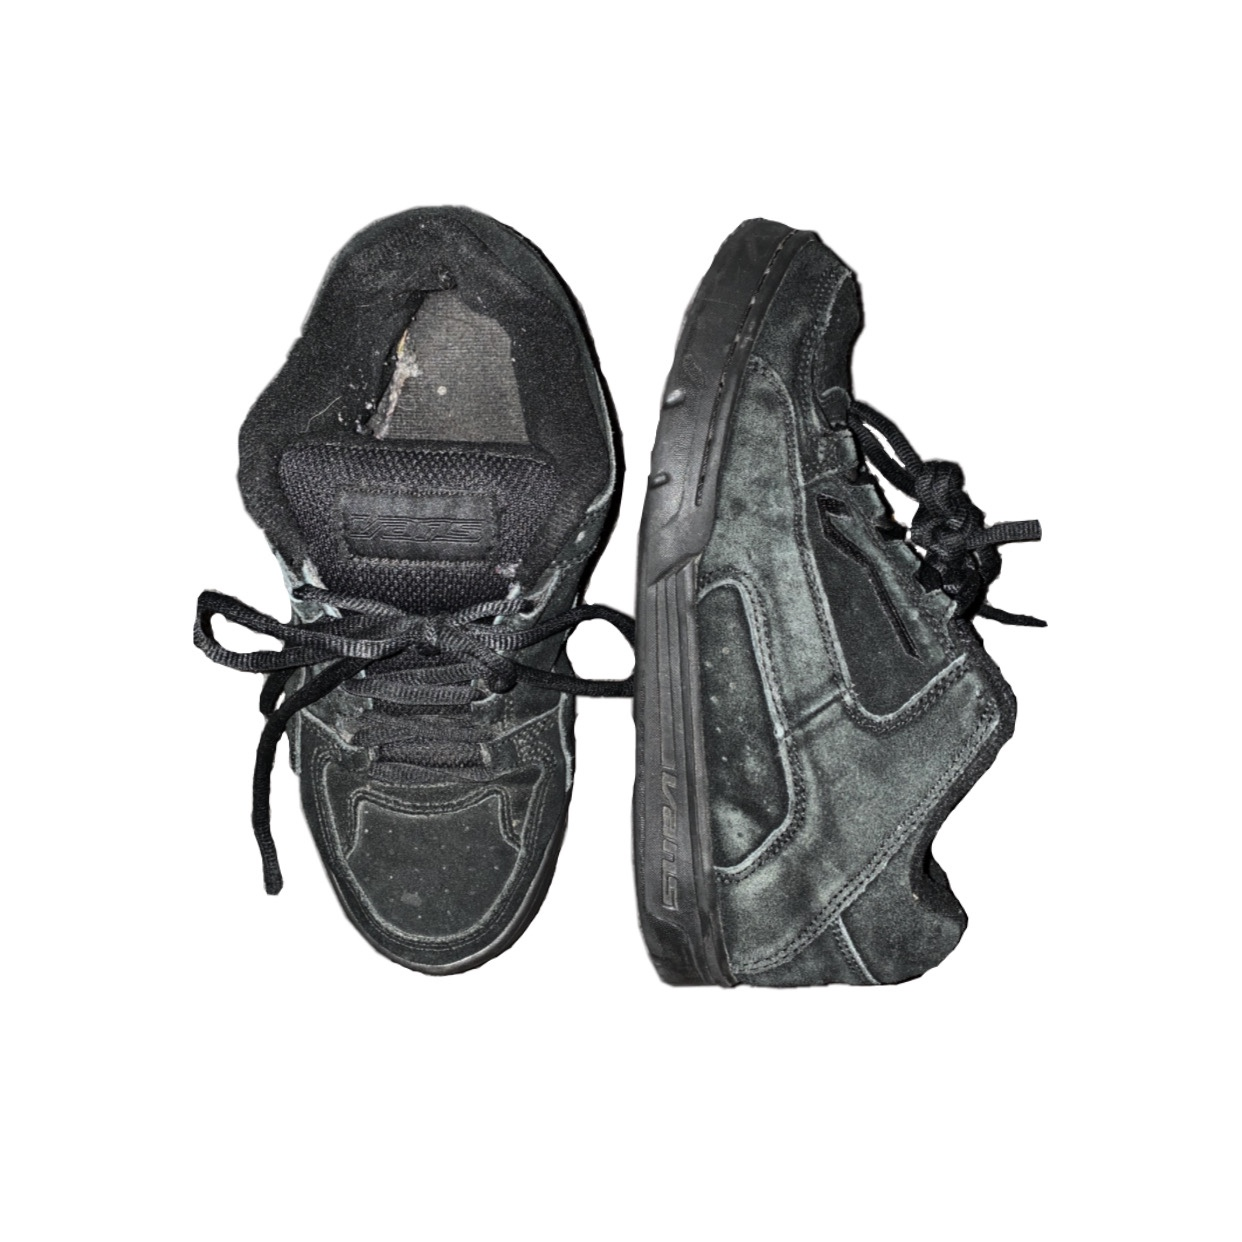 Product Image 1 - ✧₊⁎⁺⁺˳🐇✧₊🧠⁺༚🌲⁎⁺⁺˳👁⁎✧🍄⁺✧☠️ ᷀ົཽ⁎༚  chunky vans from the